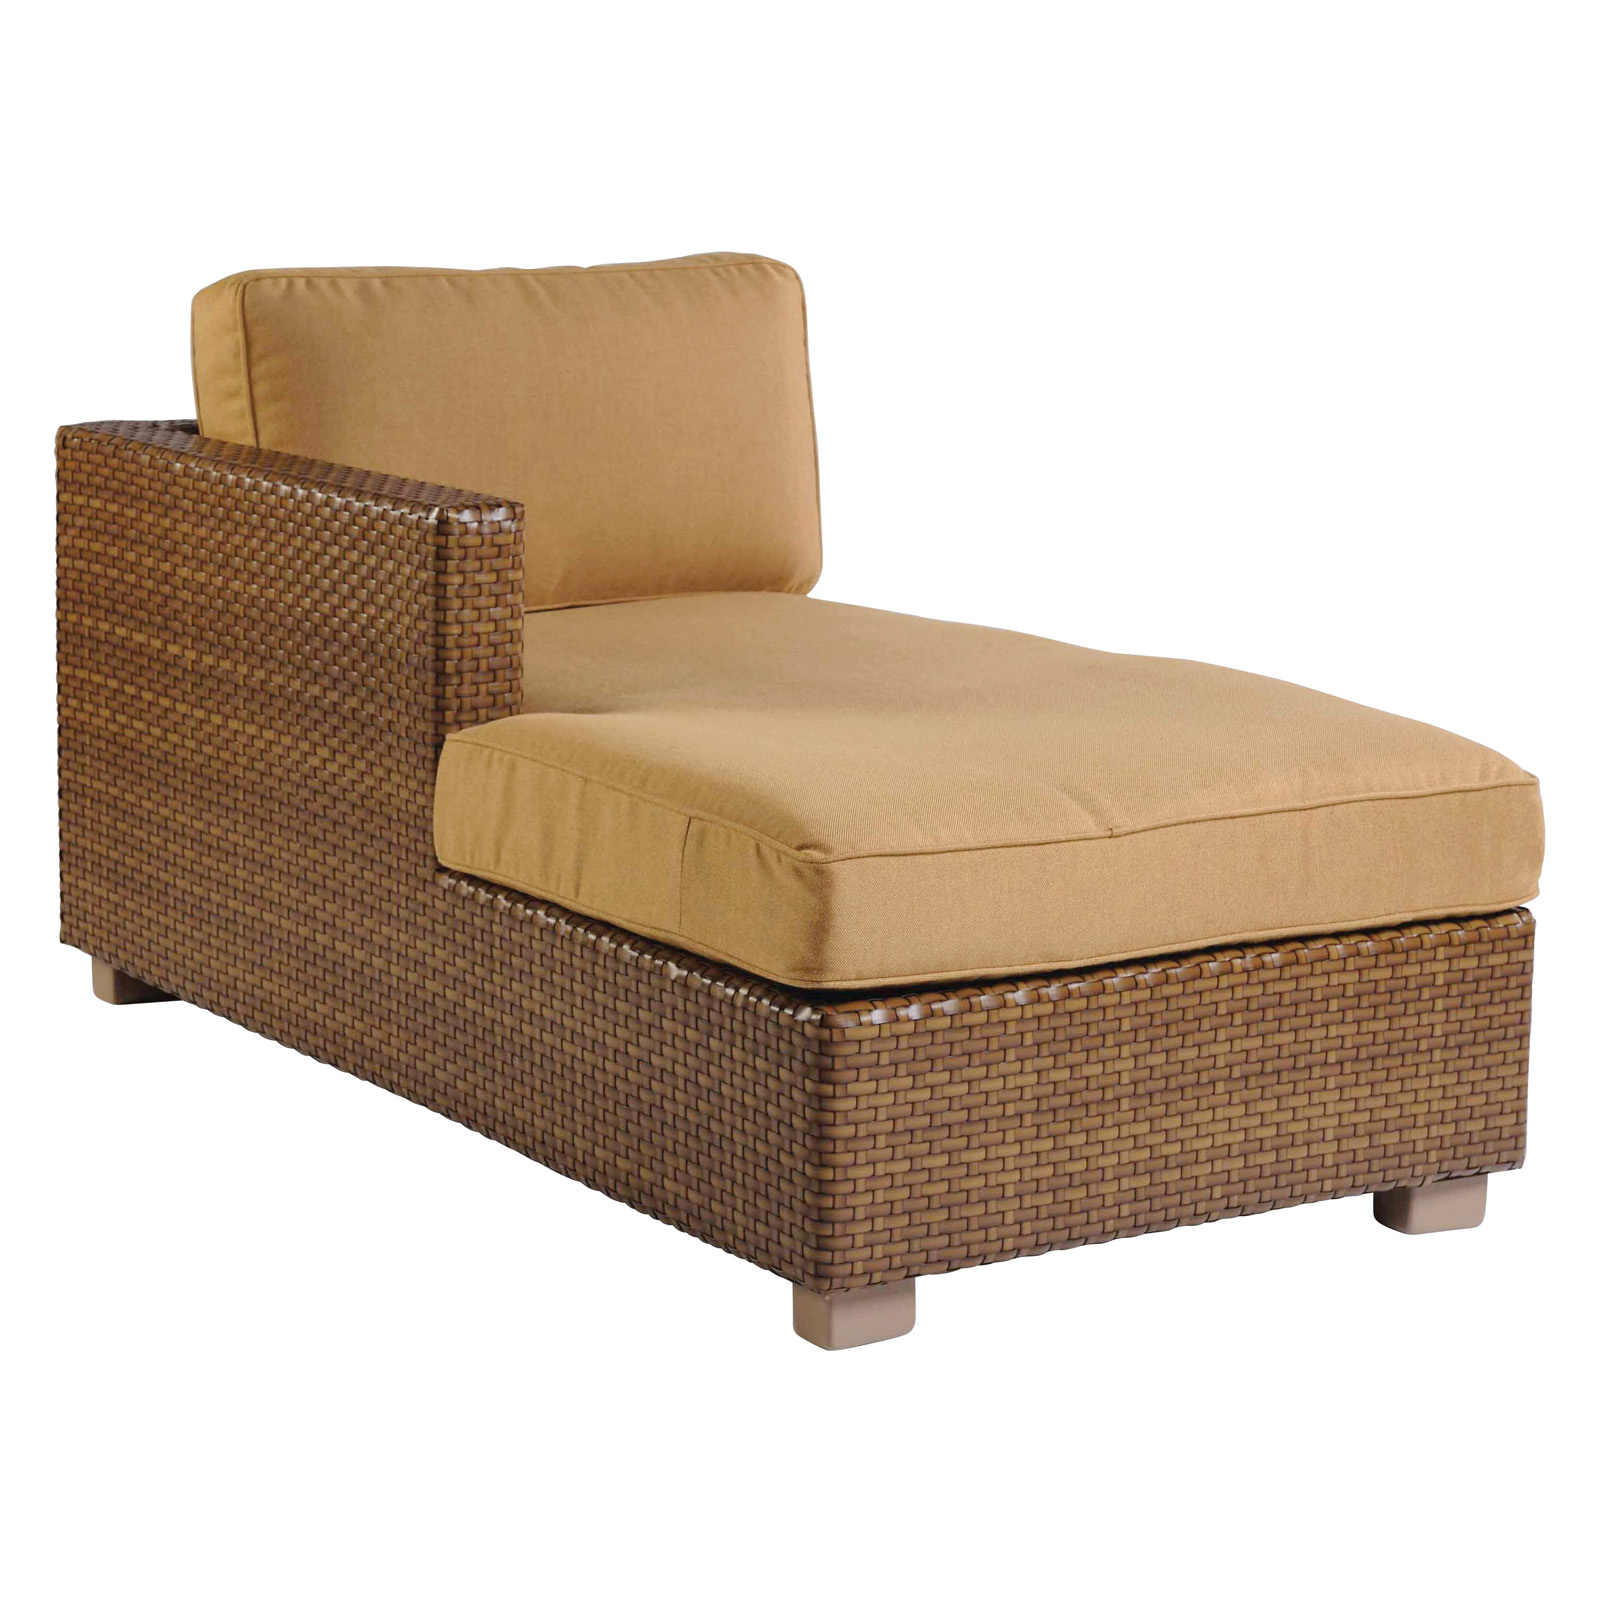 Whitecraft by woodard sedona left arm chaise lounge for Arm chaise lounge